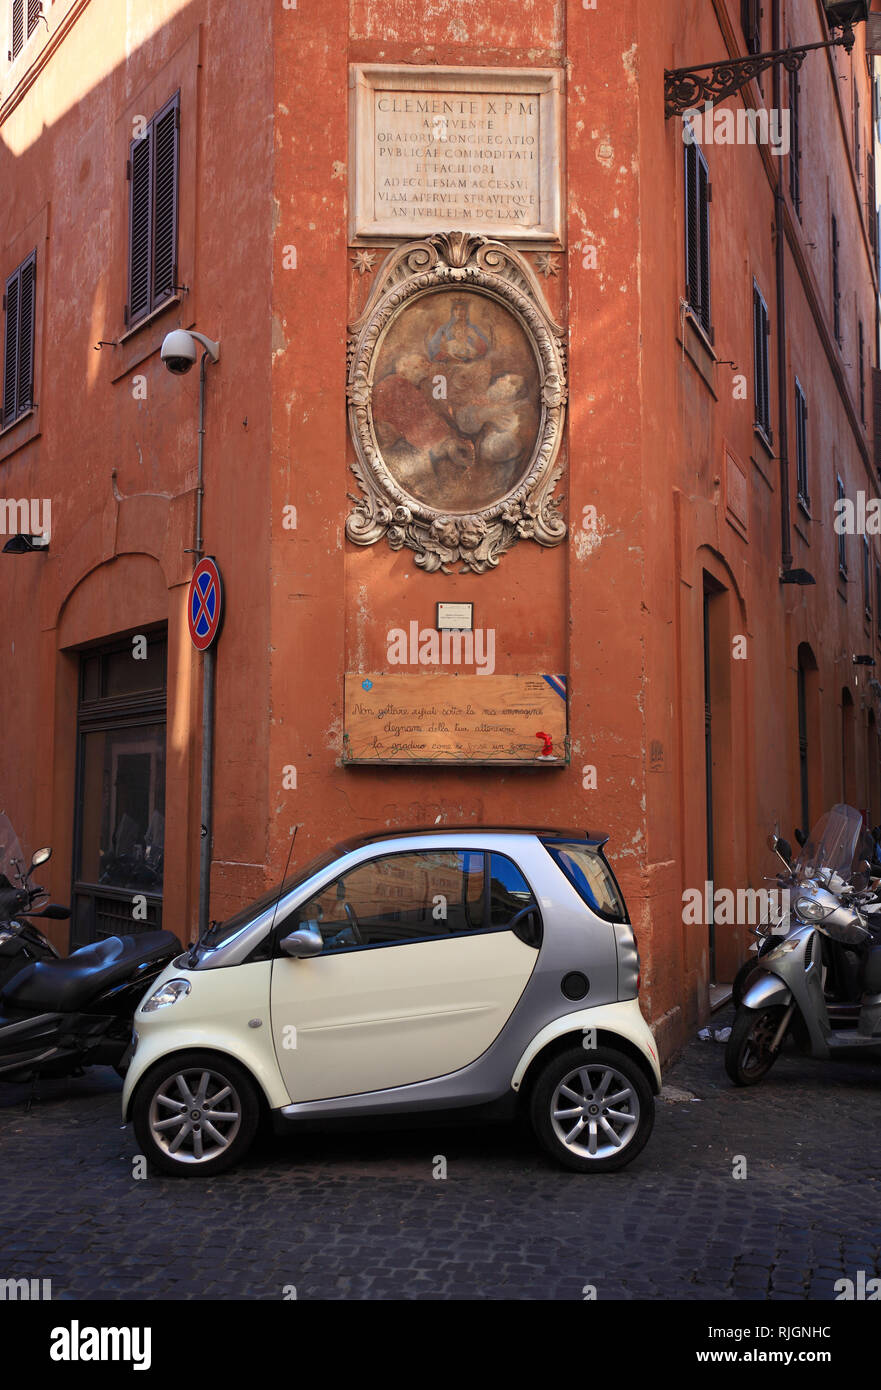 Religious image on a house wall, including a parked mercedes smart, at Campo de fiori, Rome, Italy - Stock Image